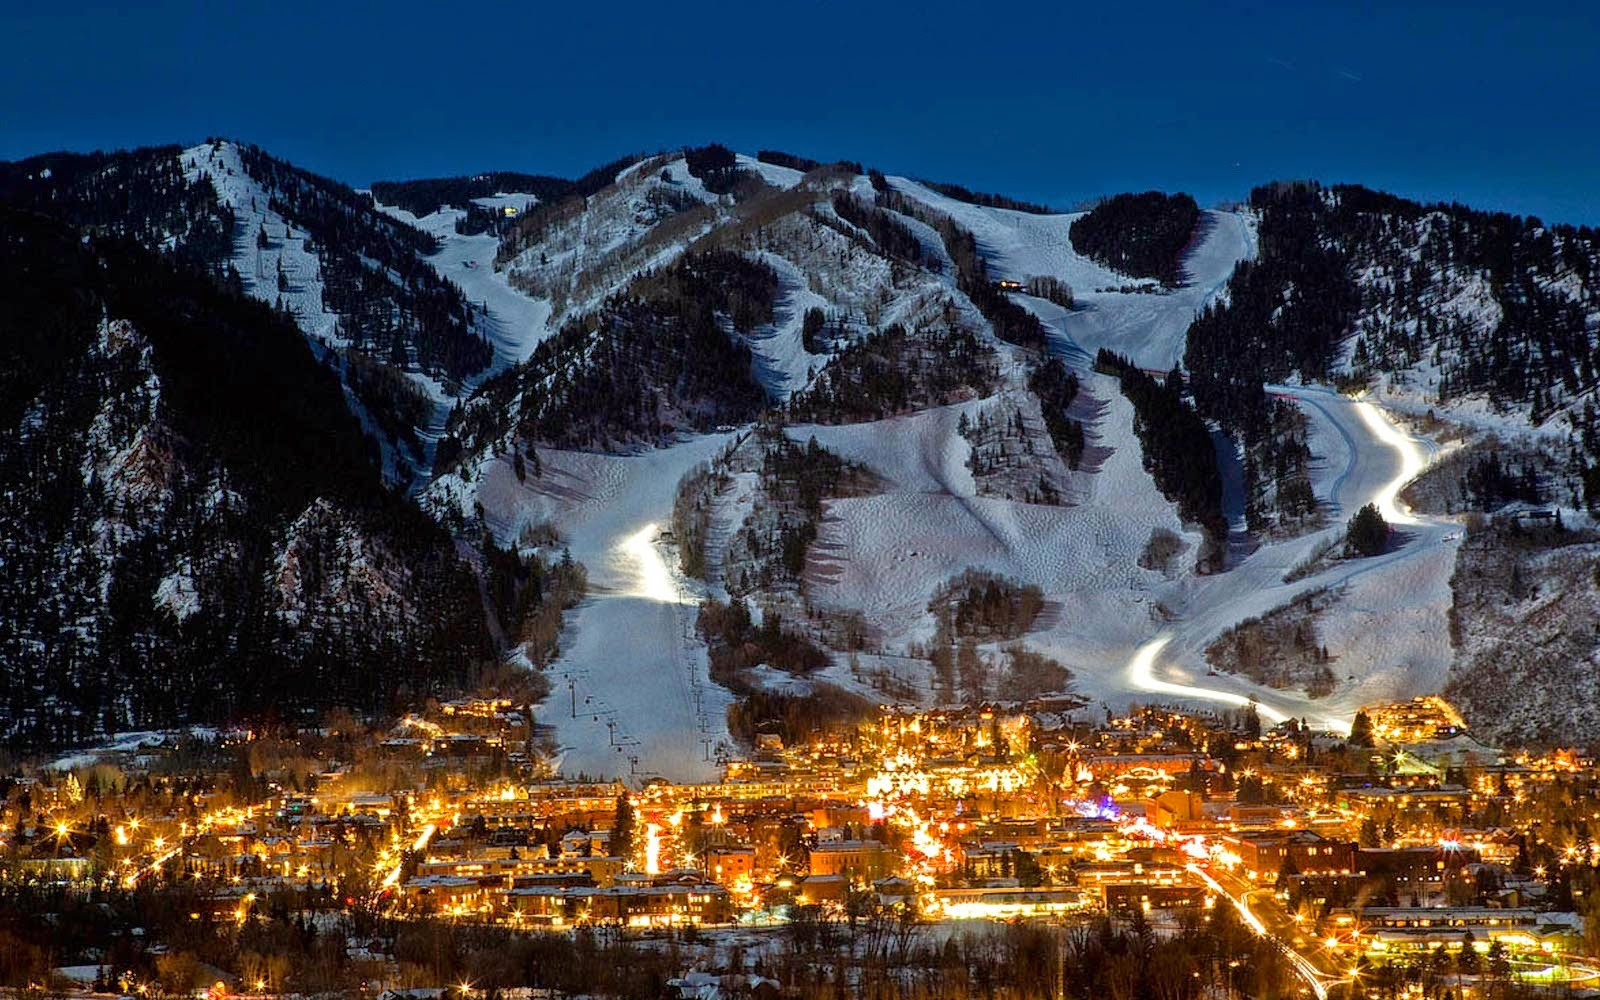 snowmass village christian single women Aspen property values down 20 to 40 percent he has worked in the aspen and snowmass village market for more sales of single-family.